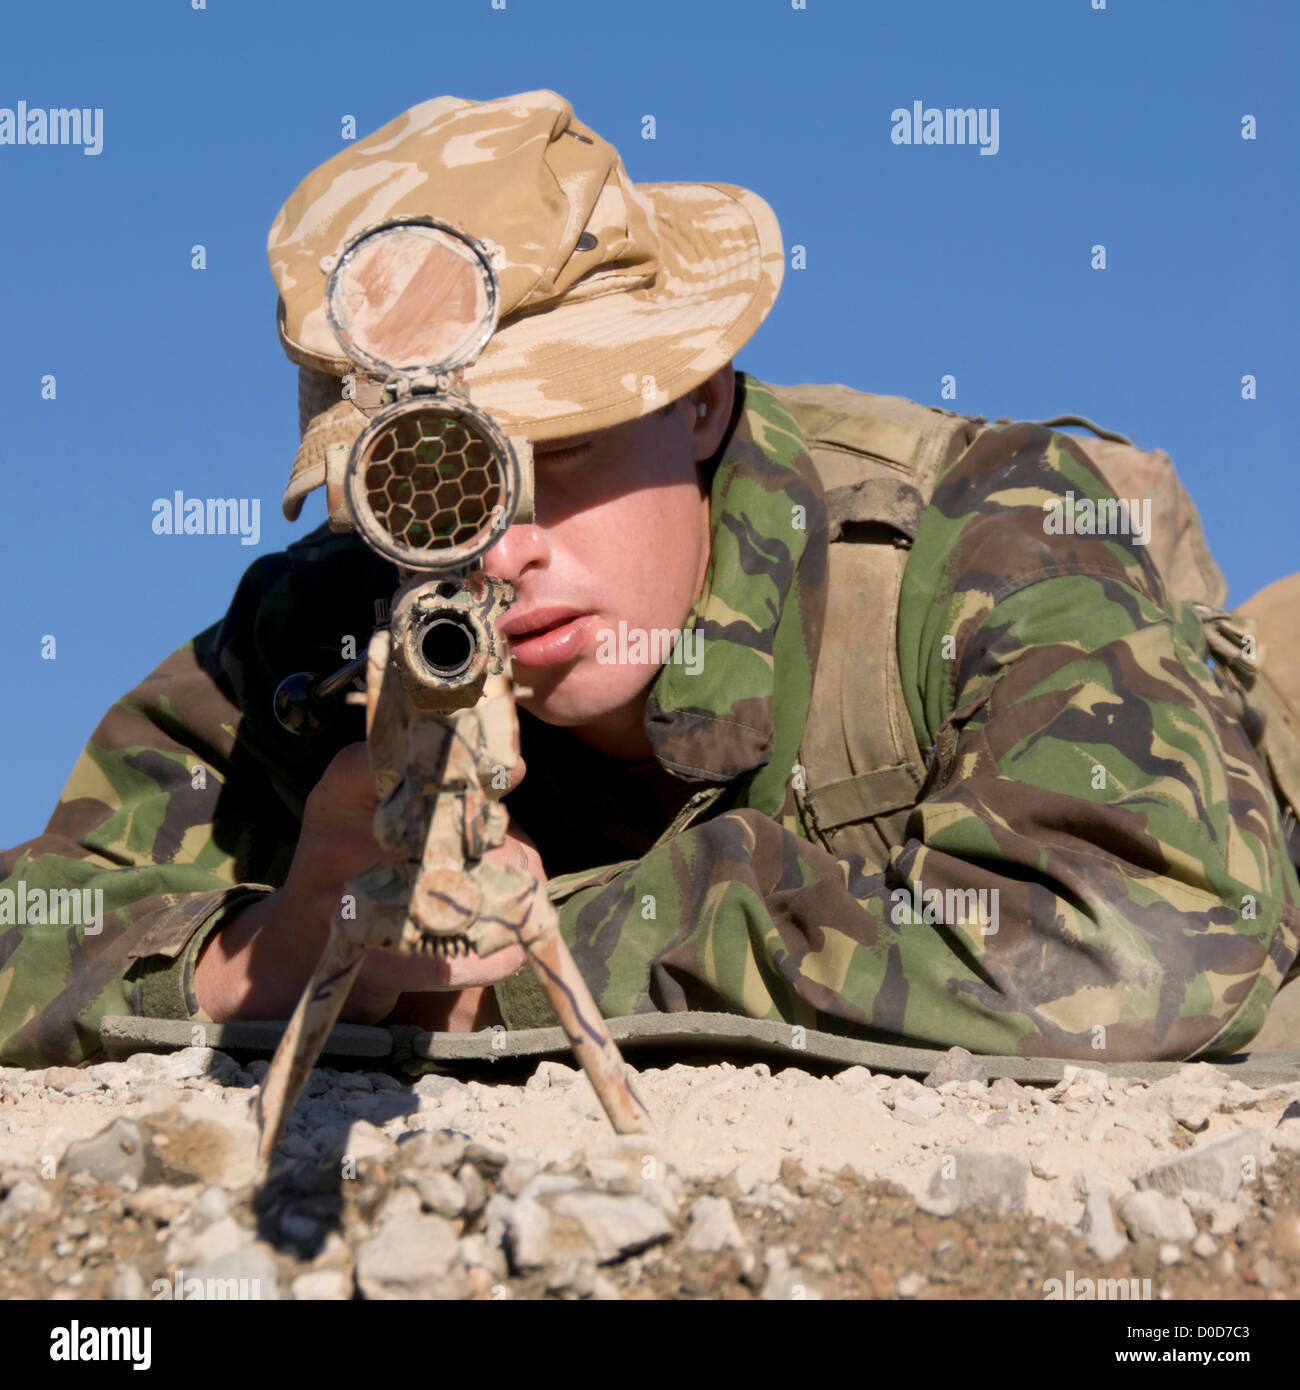 A British Royal Marine Commando Sniper Takes Aim - Stock Image